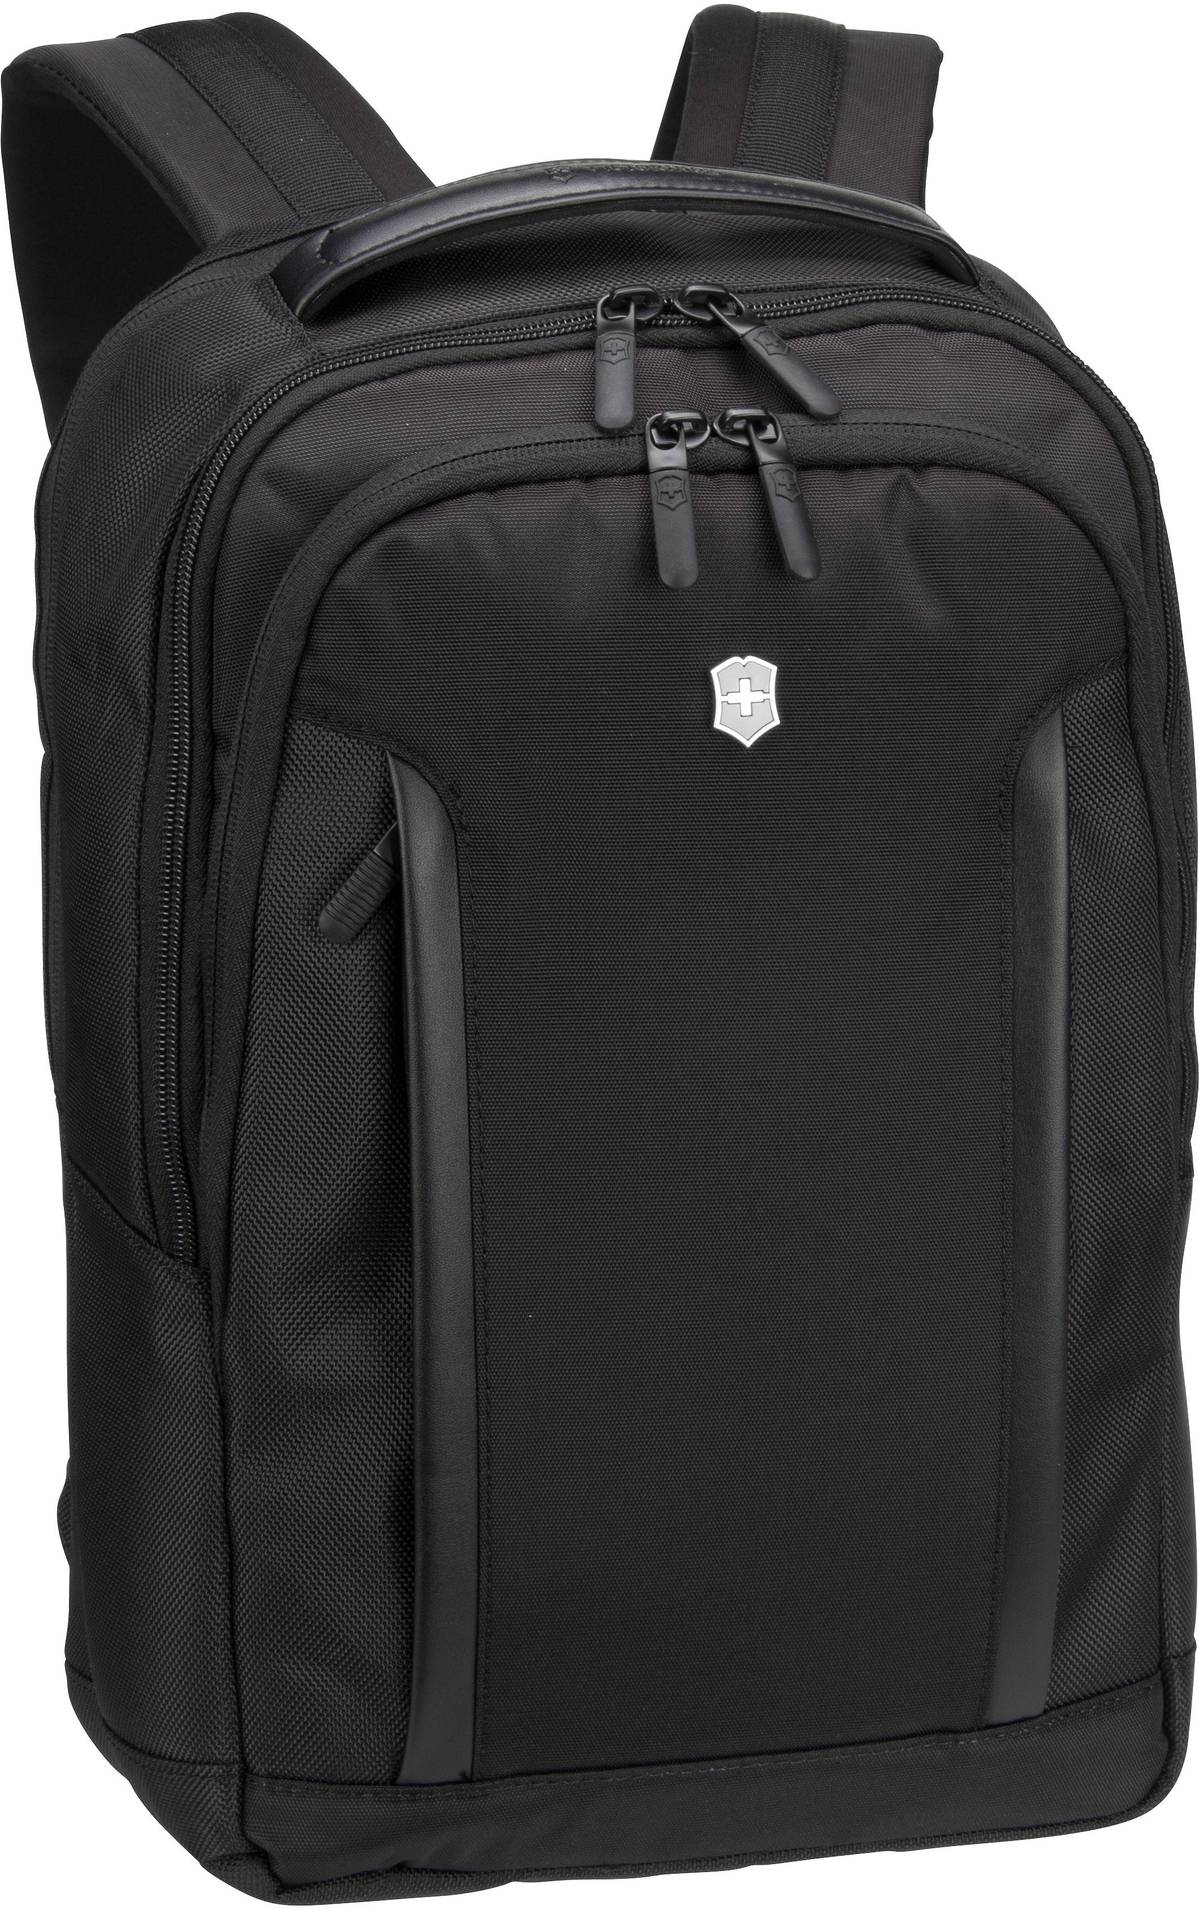 Laptoprucksack Altmont Professional Compact Laptop Backpack Black (16 Liter)